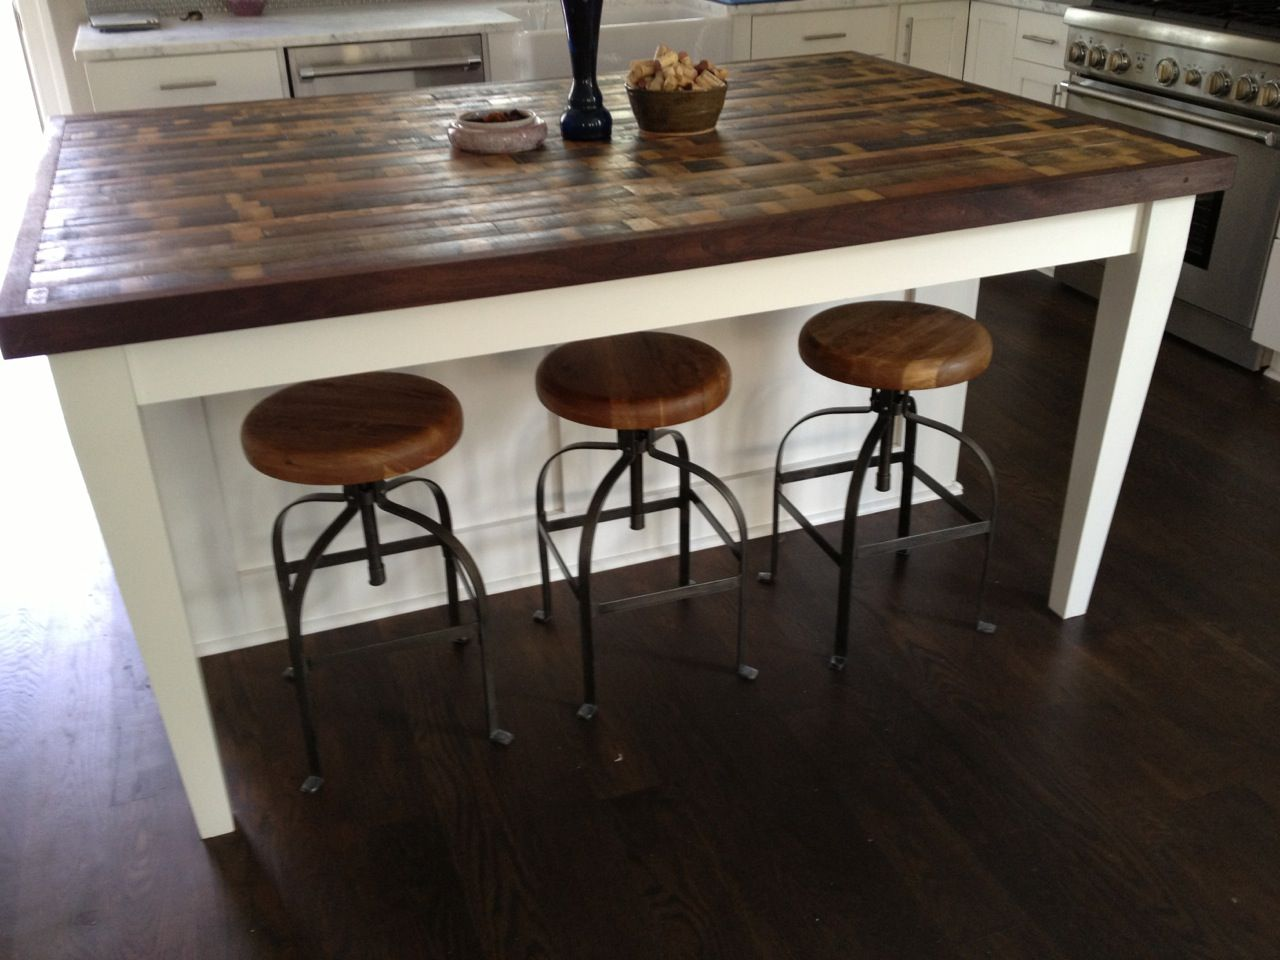 Kitchen Island Furniture best 25+ diy kitchen island ideas on pinterest | build kitchen